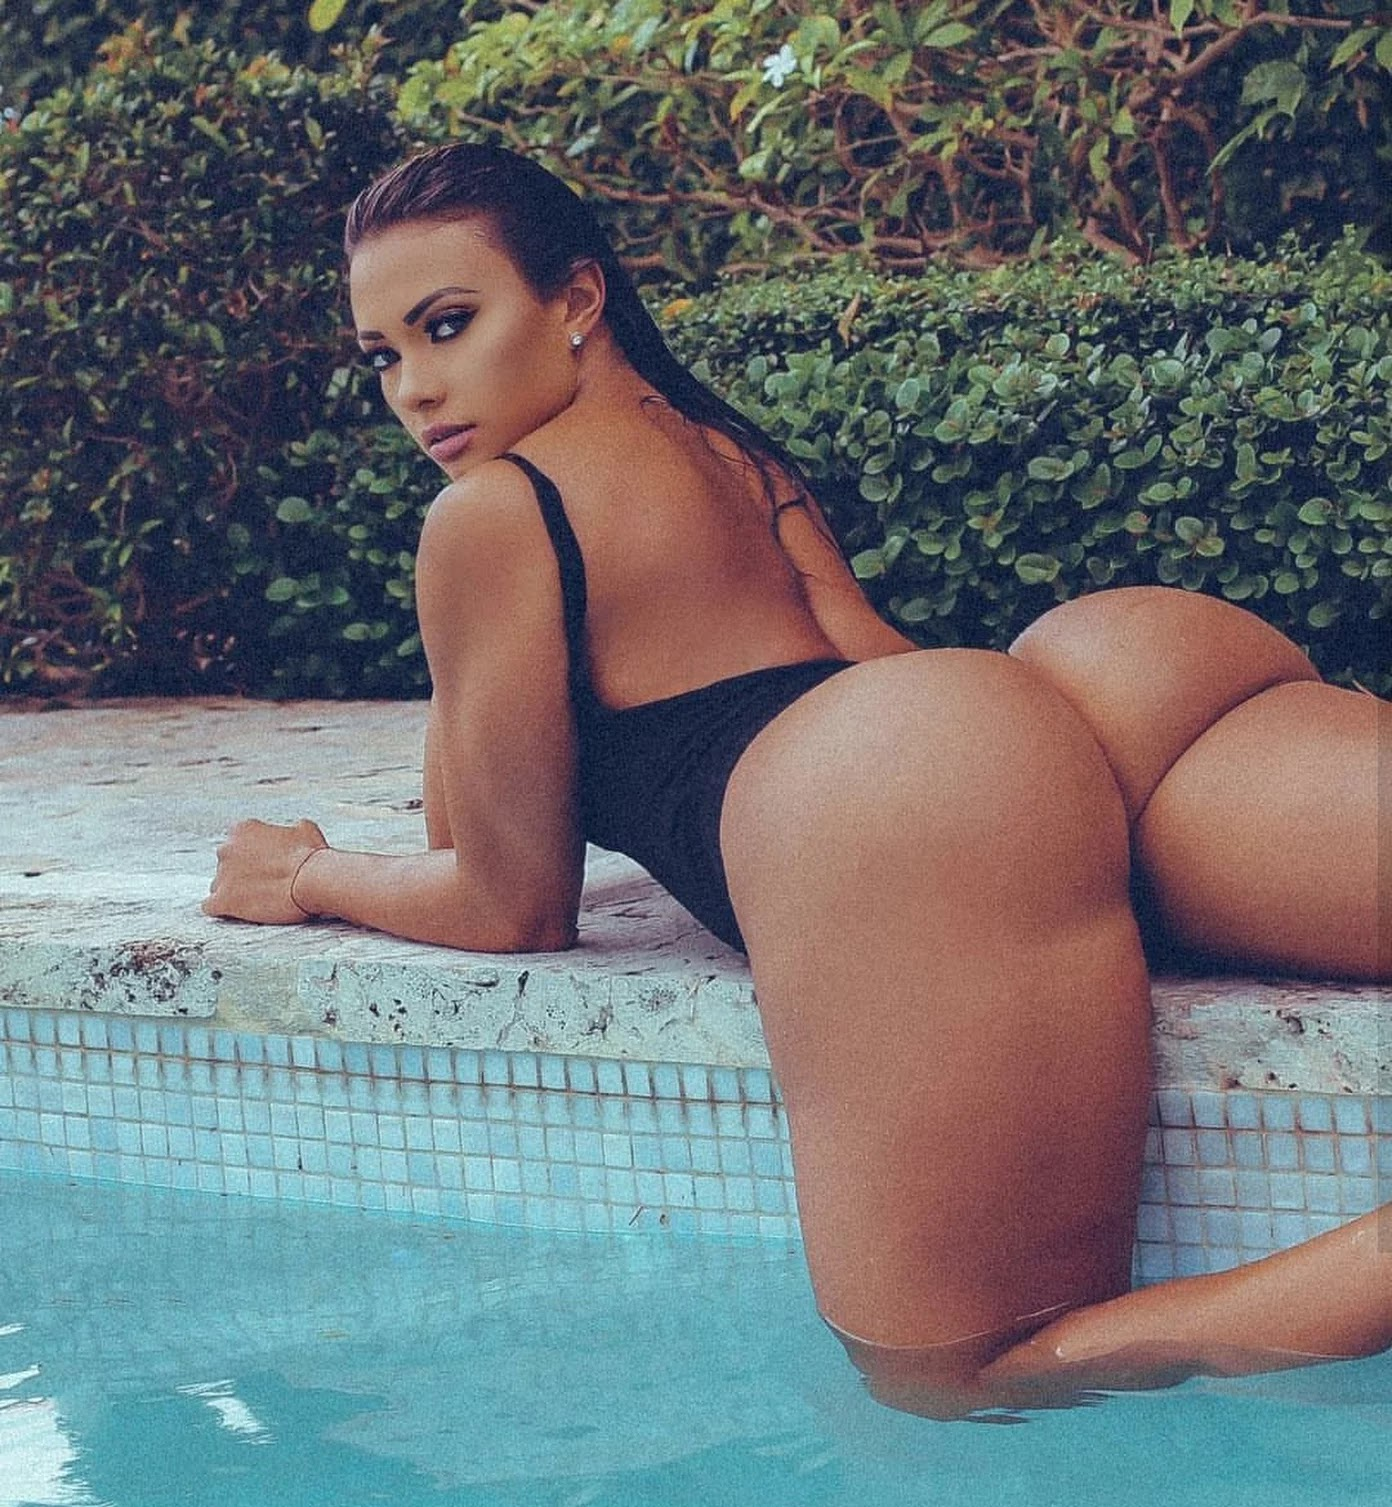 Fit and thick porn Thick Fit Hd Porn Search Xvidzz Com